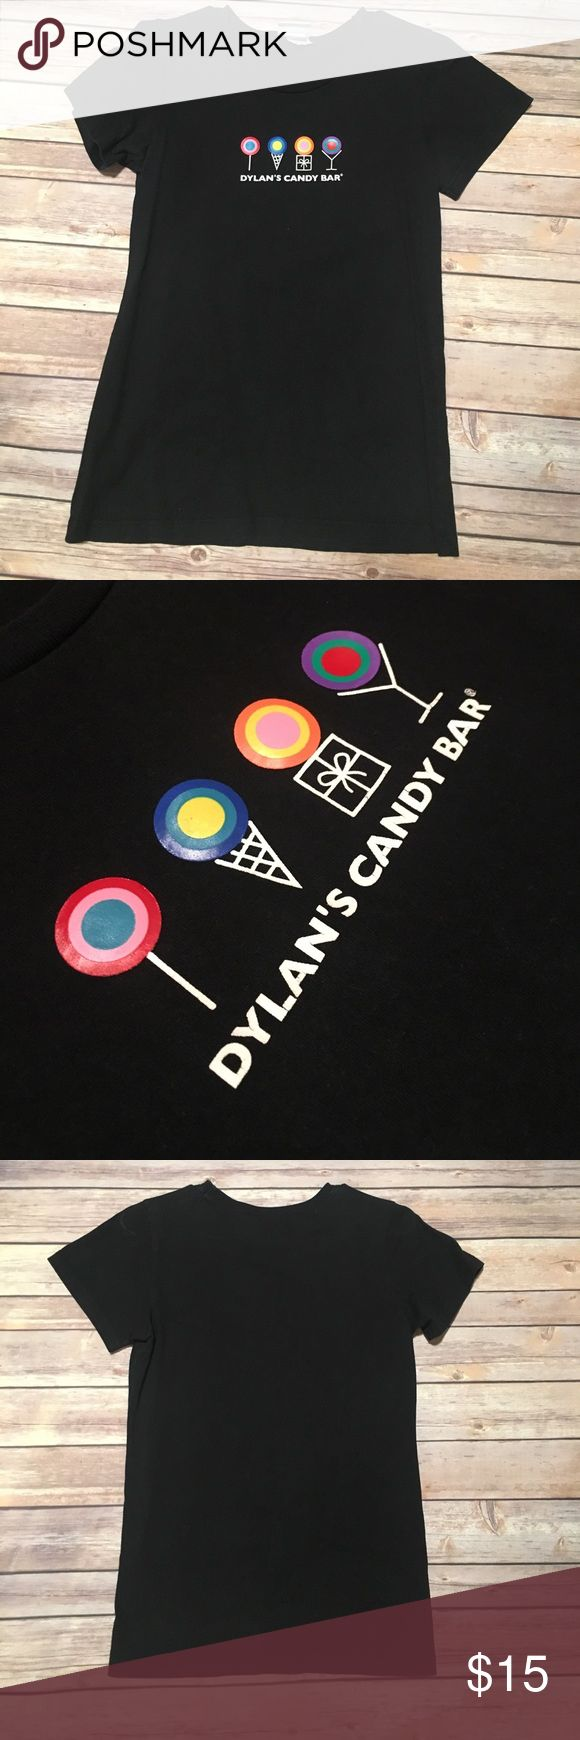 Dylan's Candy Bar Tee Dylan's Candy Bar Tee. Black Short Sleeve Tee with signature Dylan's Candy Bar Logo.  Shirt fit runs small. Dylan's Candy Bar Tops Tees - Short Sleeve